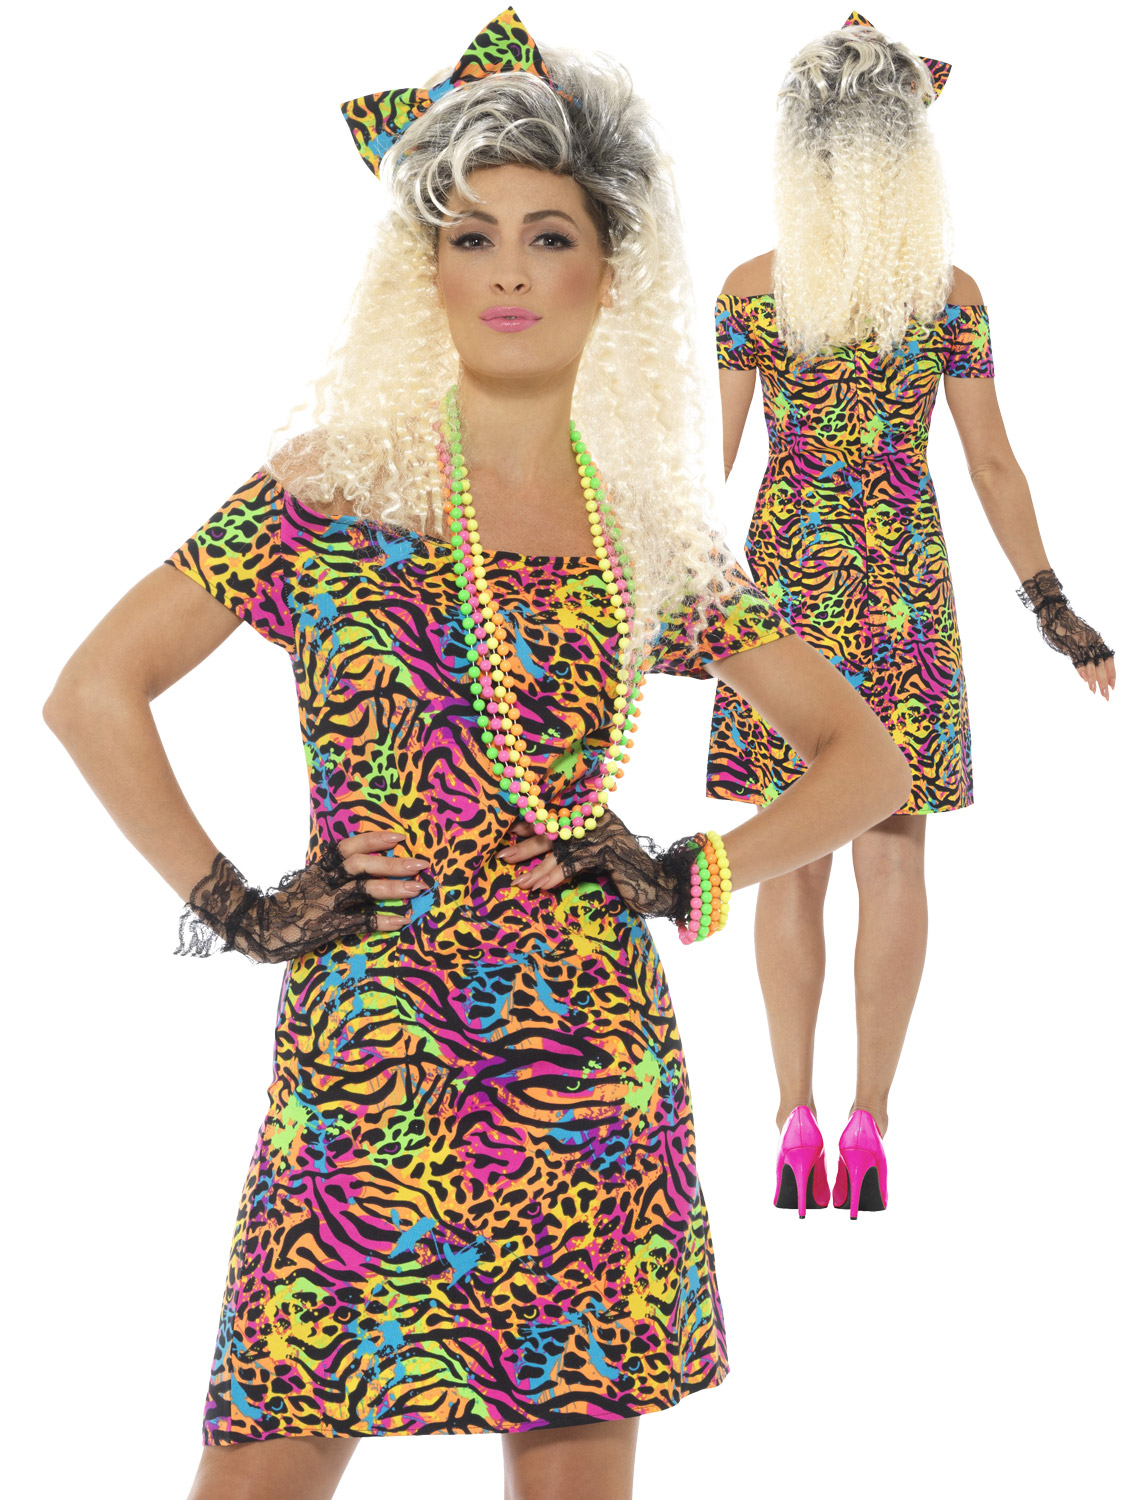 6d728175e4 Details about Ladies 80s Fancy Dress Costume Party Animal Neon Rave  Eighties Womens Outfit